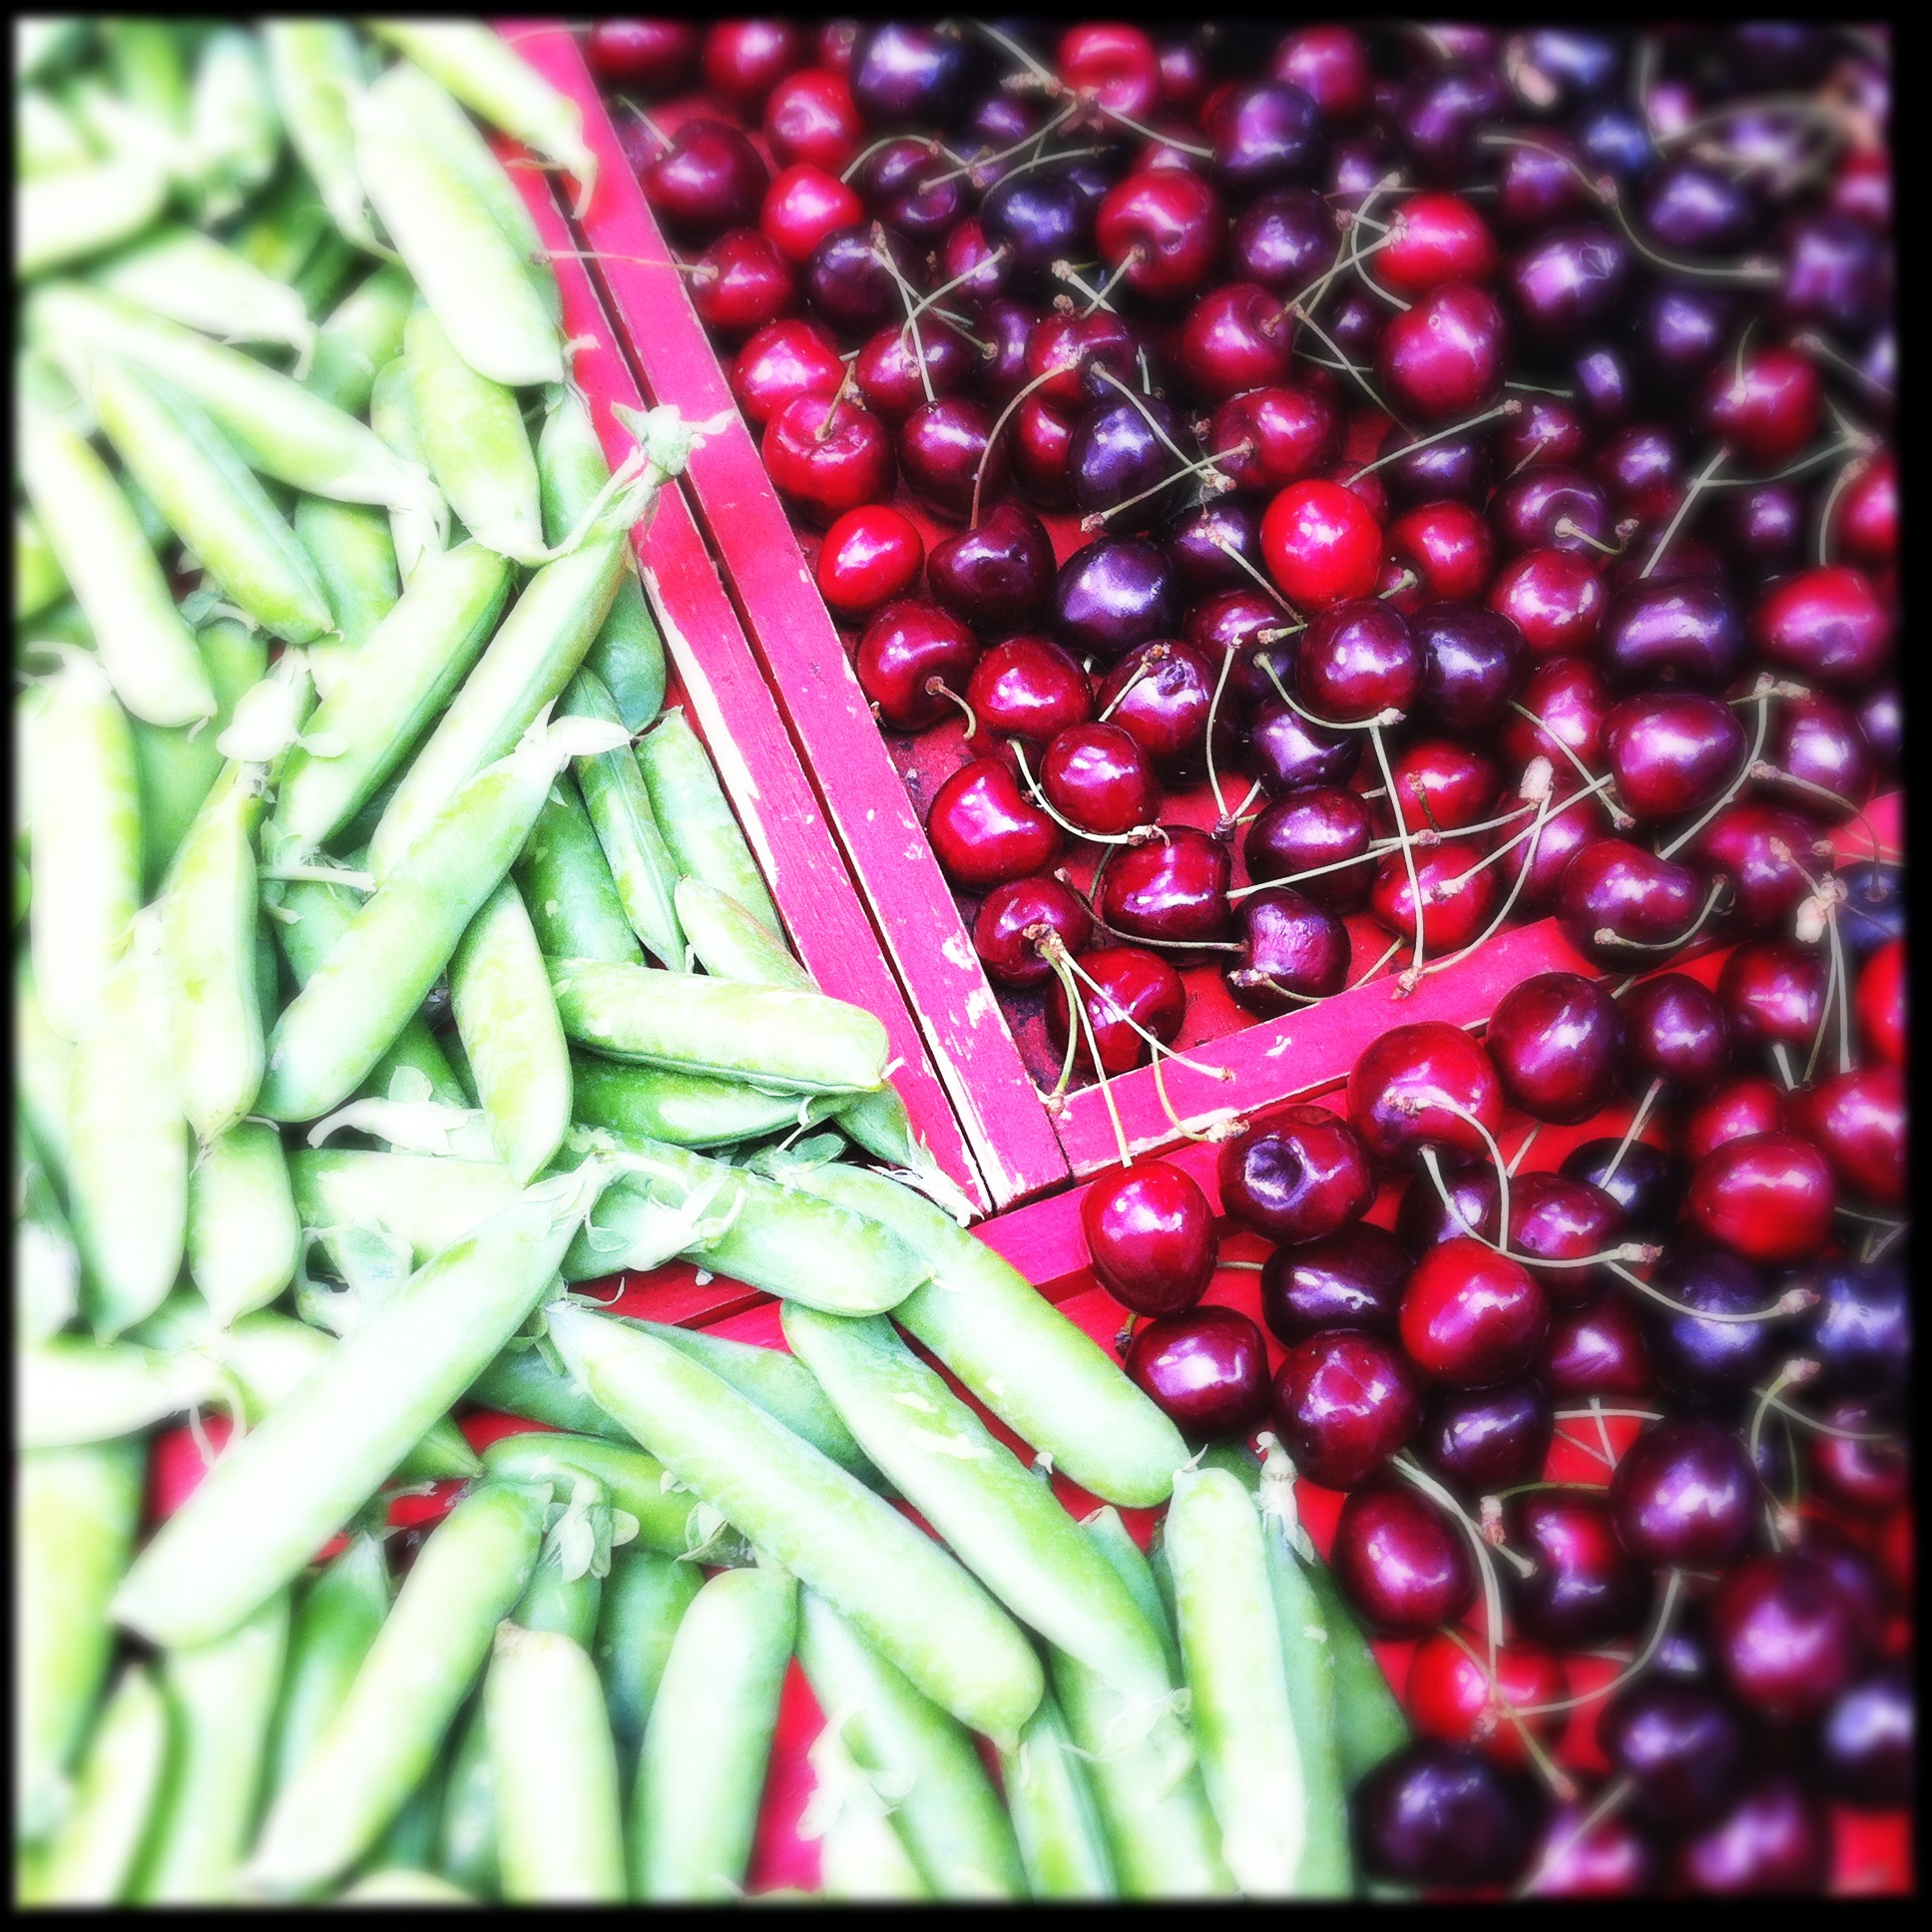 iPhone photo: cherries & sugar peas